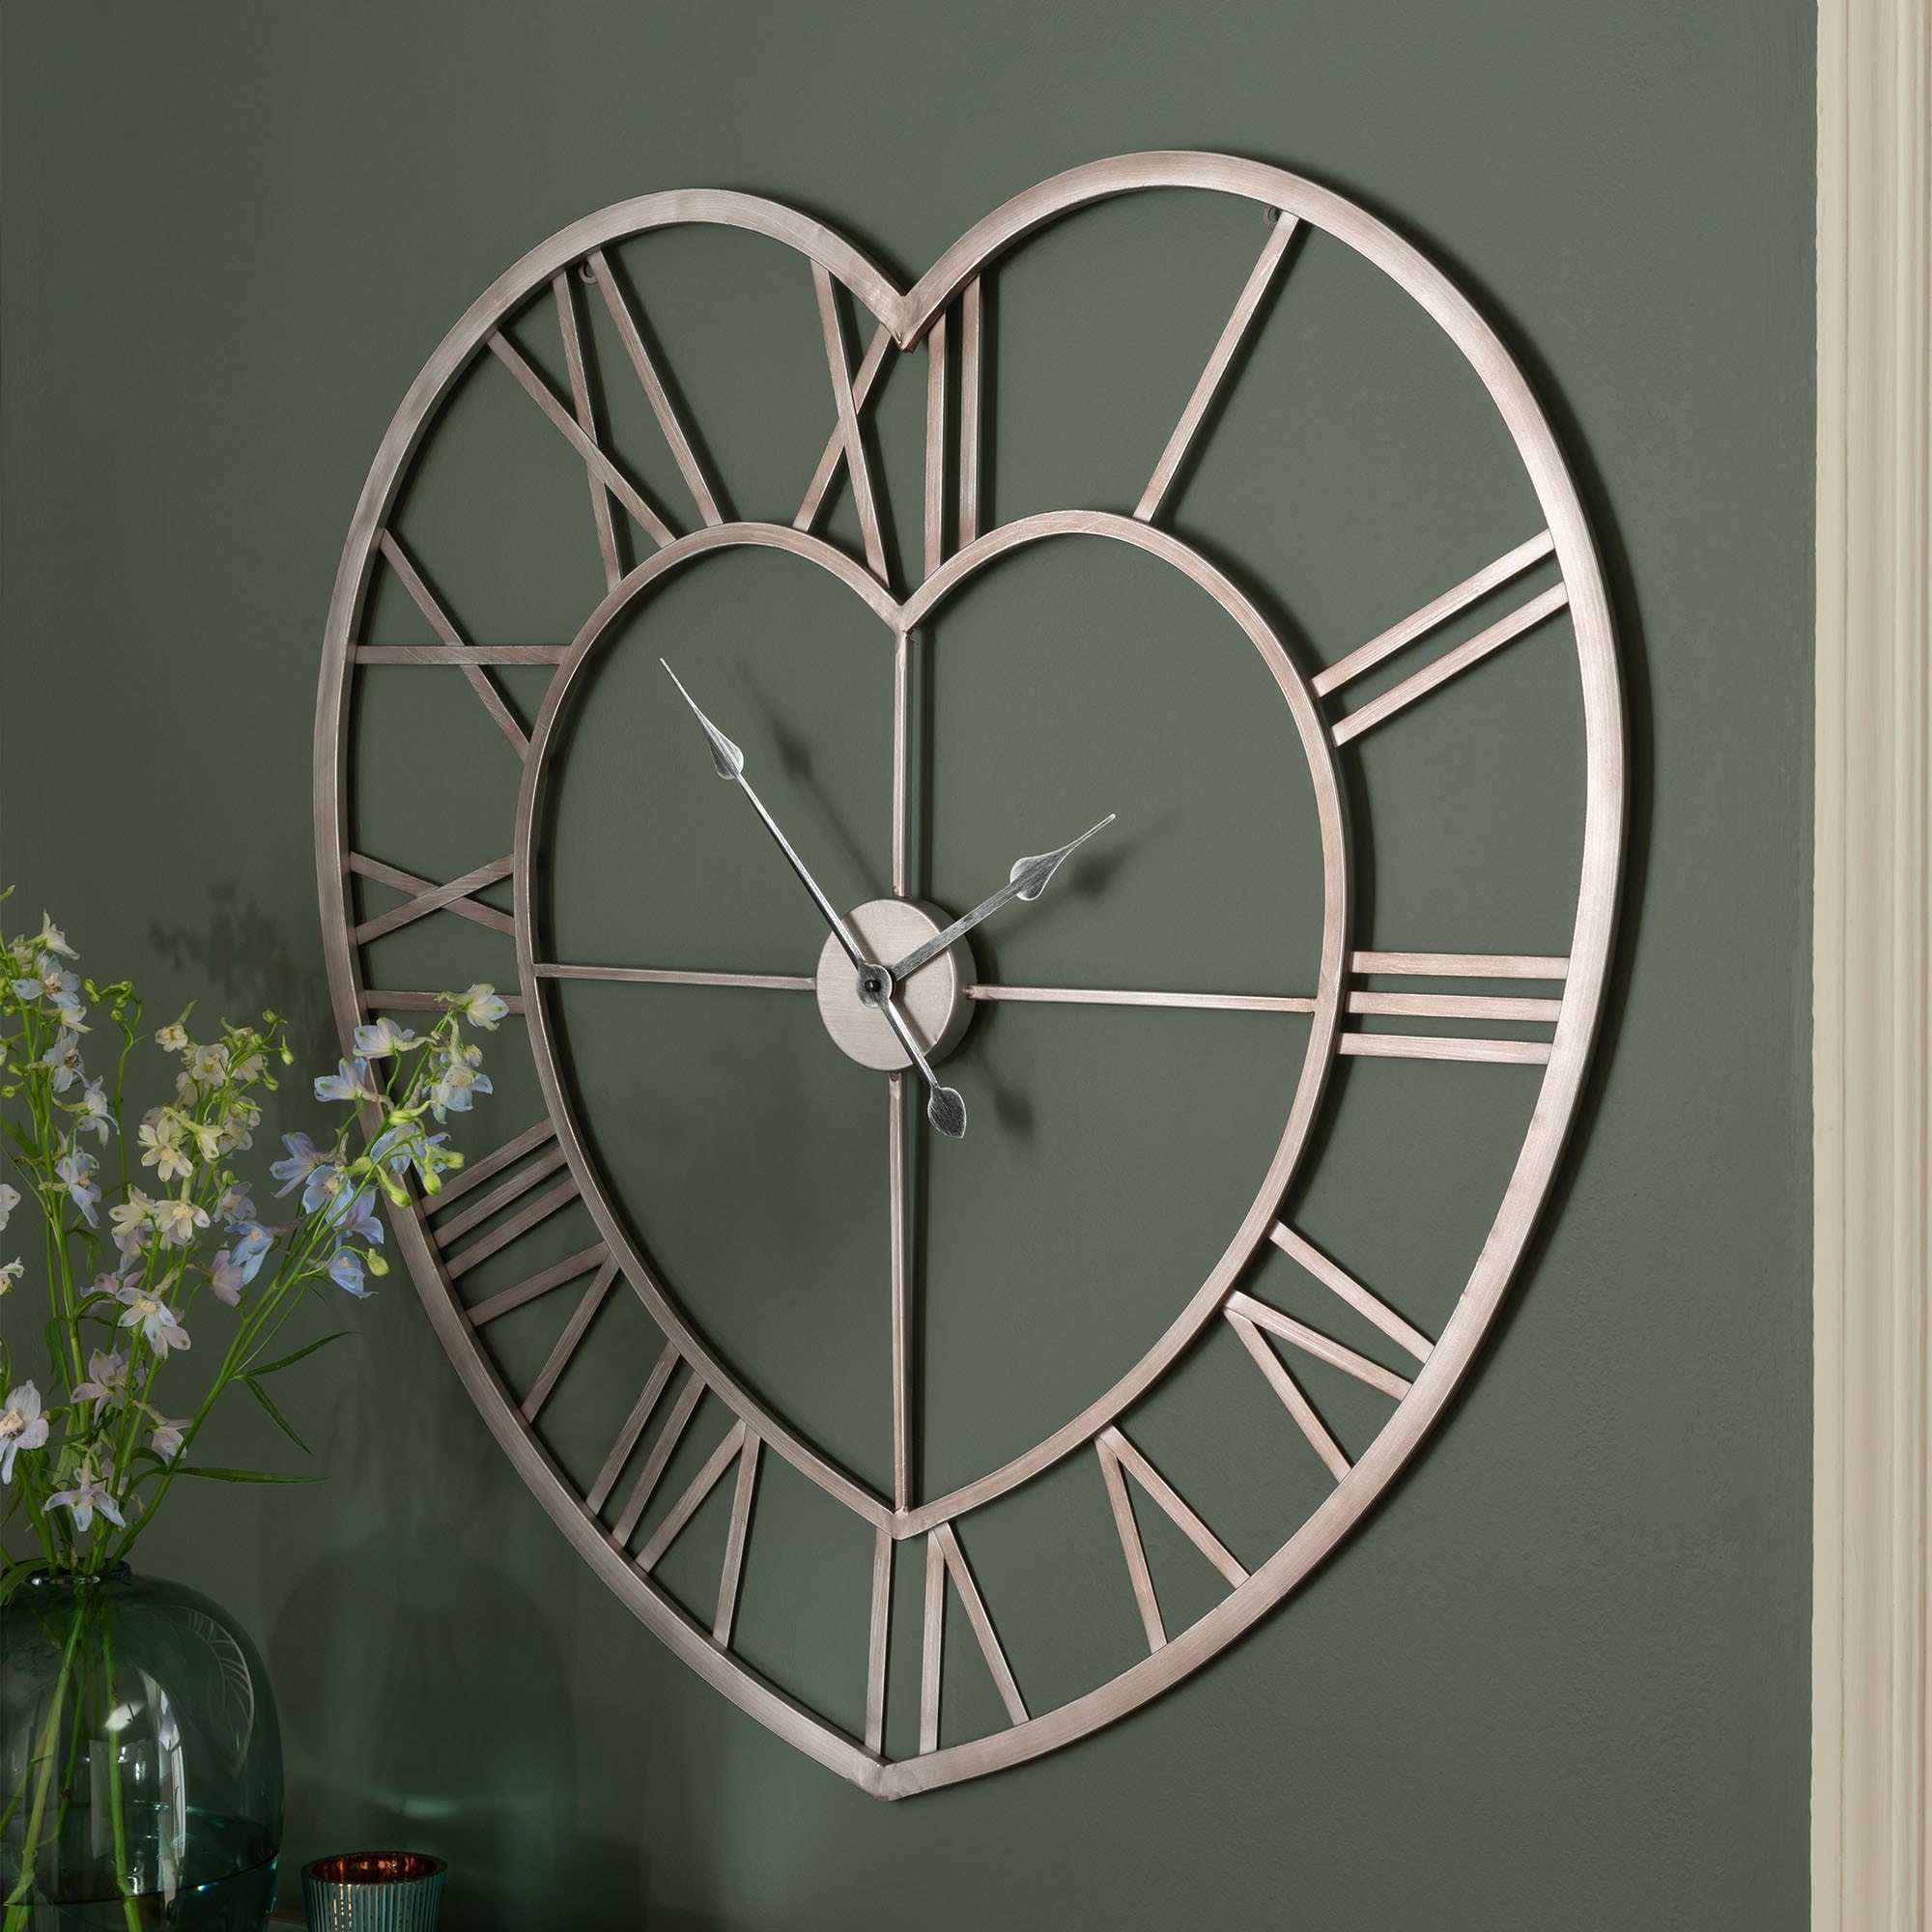 Silver Heart Shaped Metal Frame Wall Clock Clock